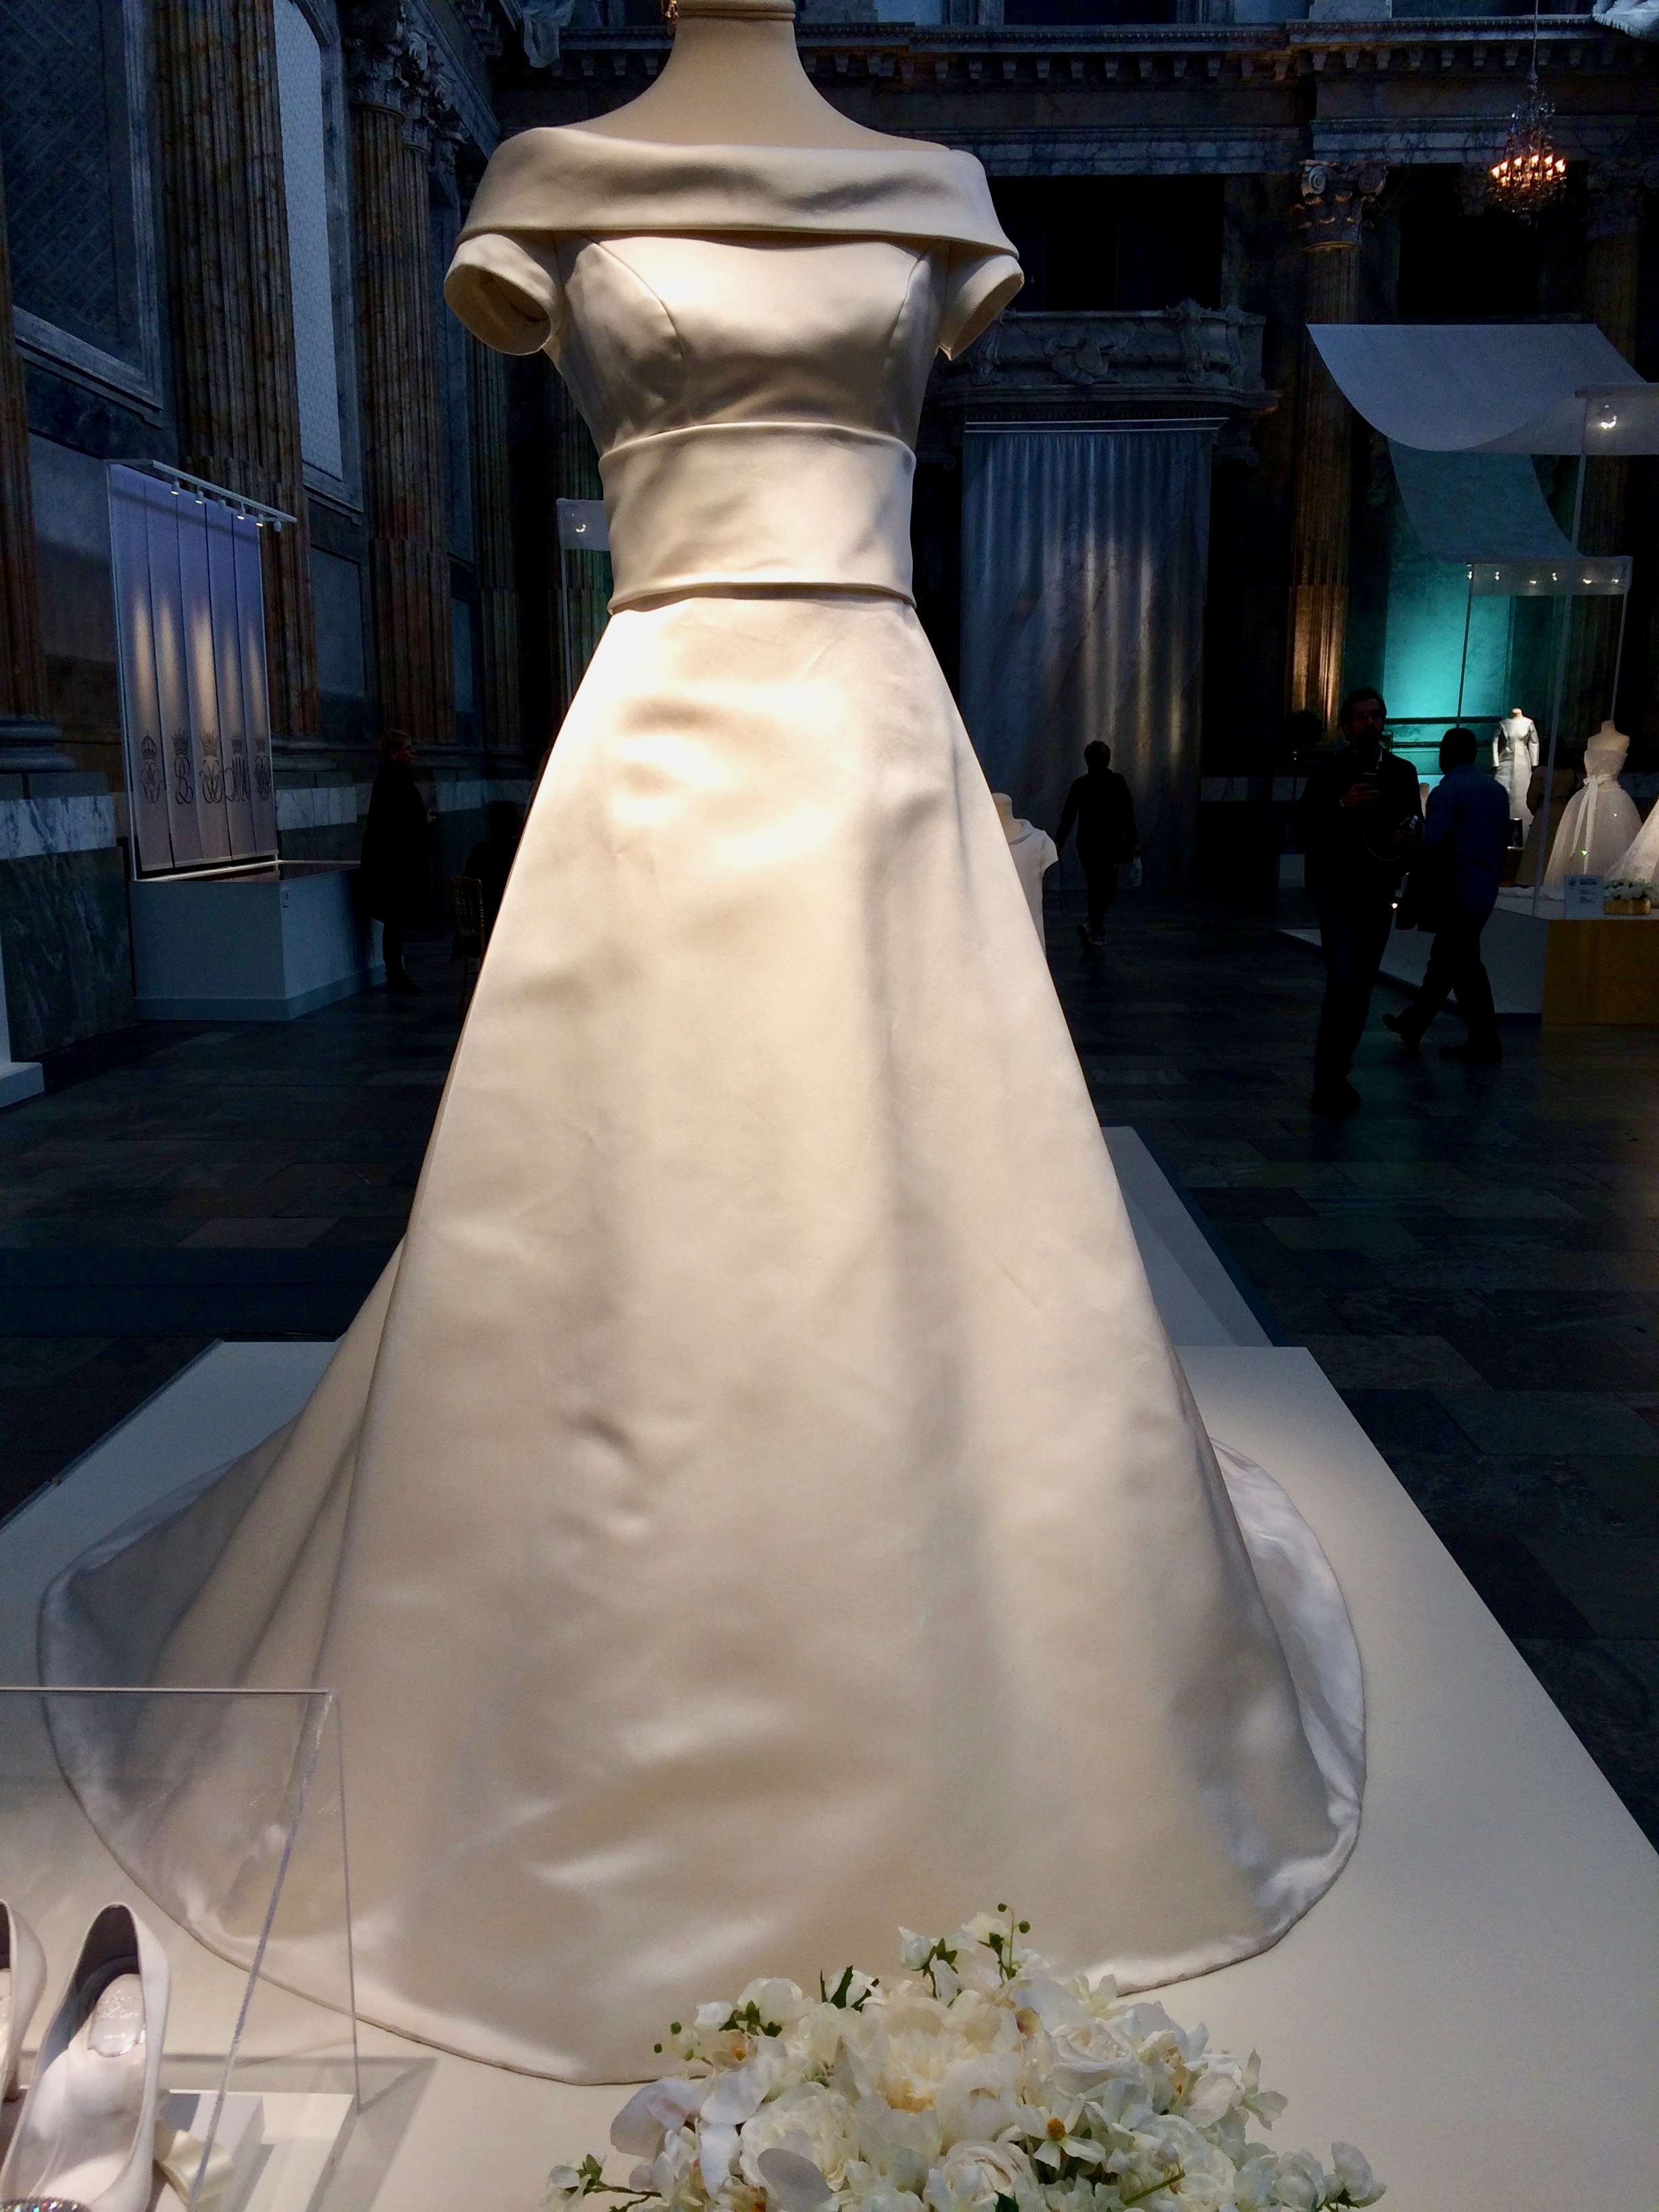 This One Is The 1976 Wedding Dress Of Queen Silvia She Walked Up Aisle A Moner And Down I Have Never Been Fan As It: Swedish Royal Wedding Dresses At Websimilar.org